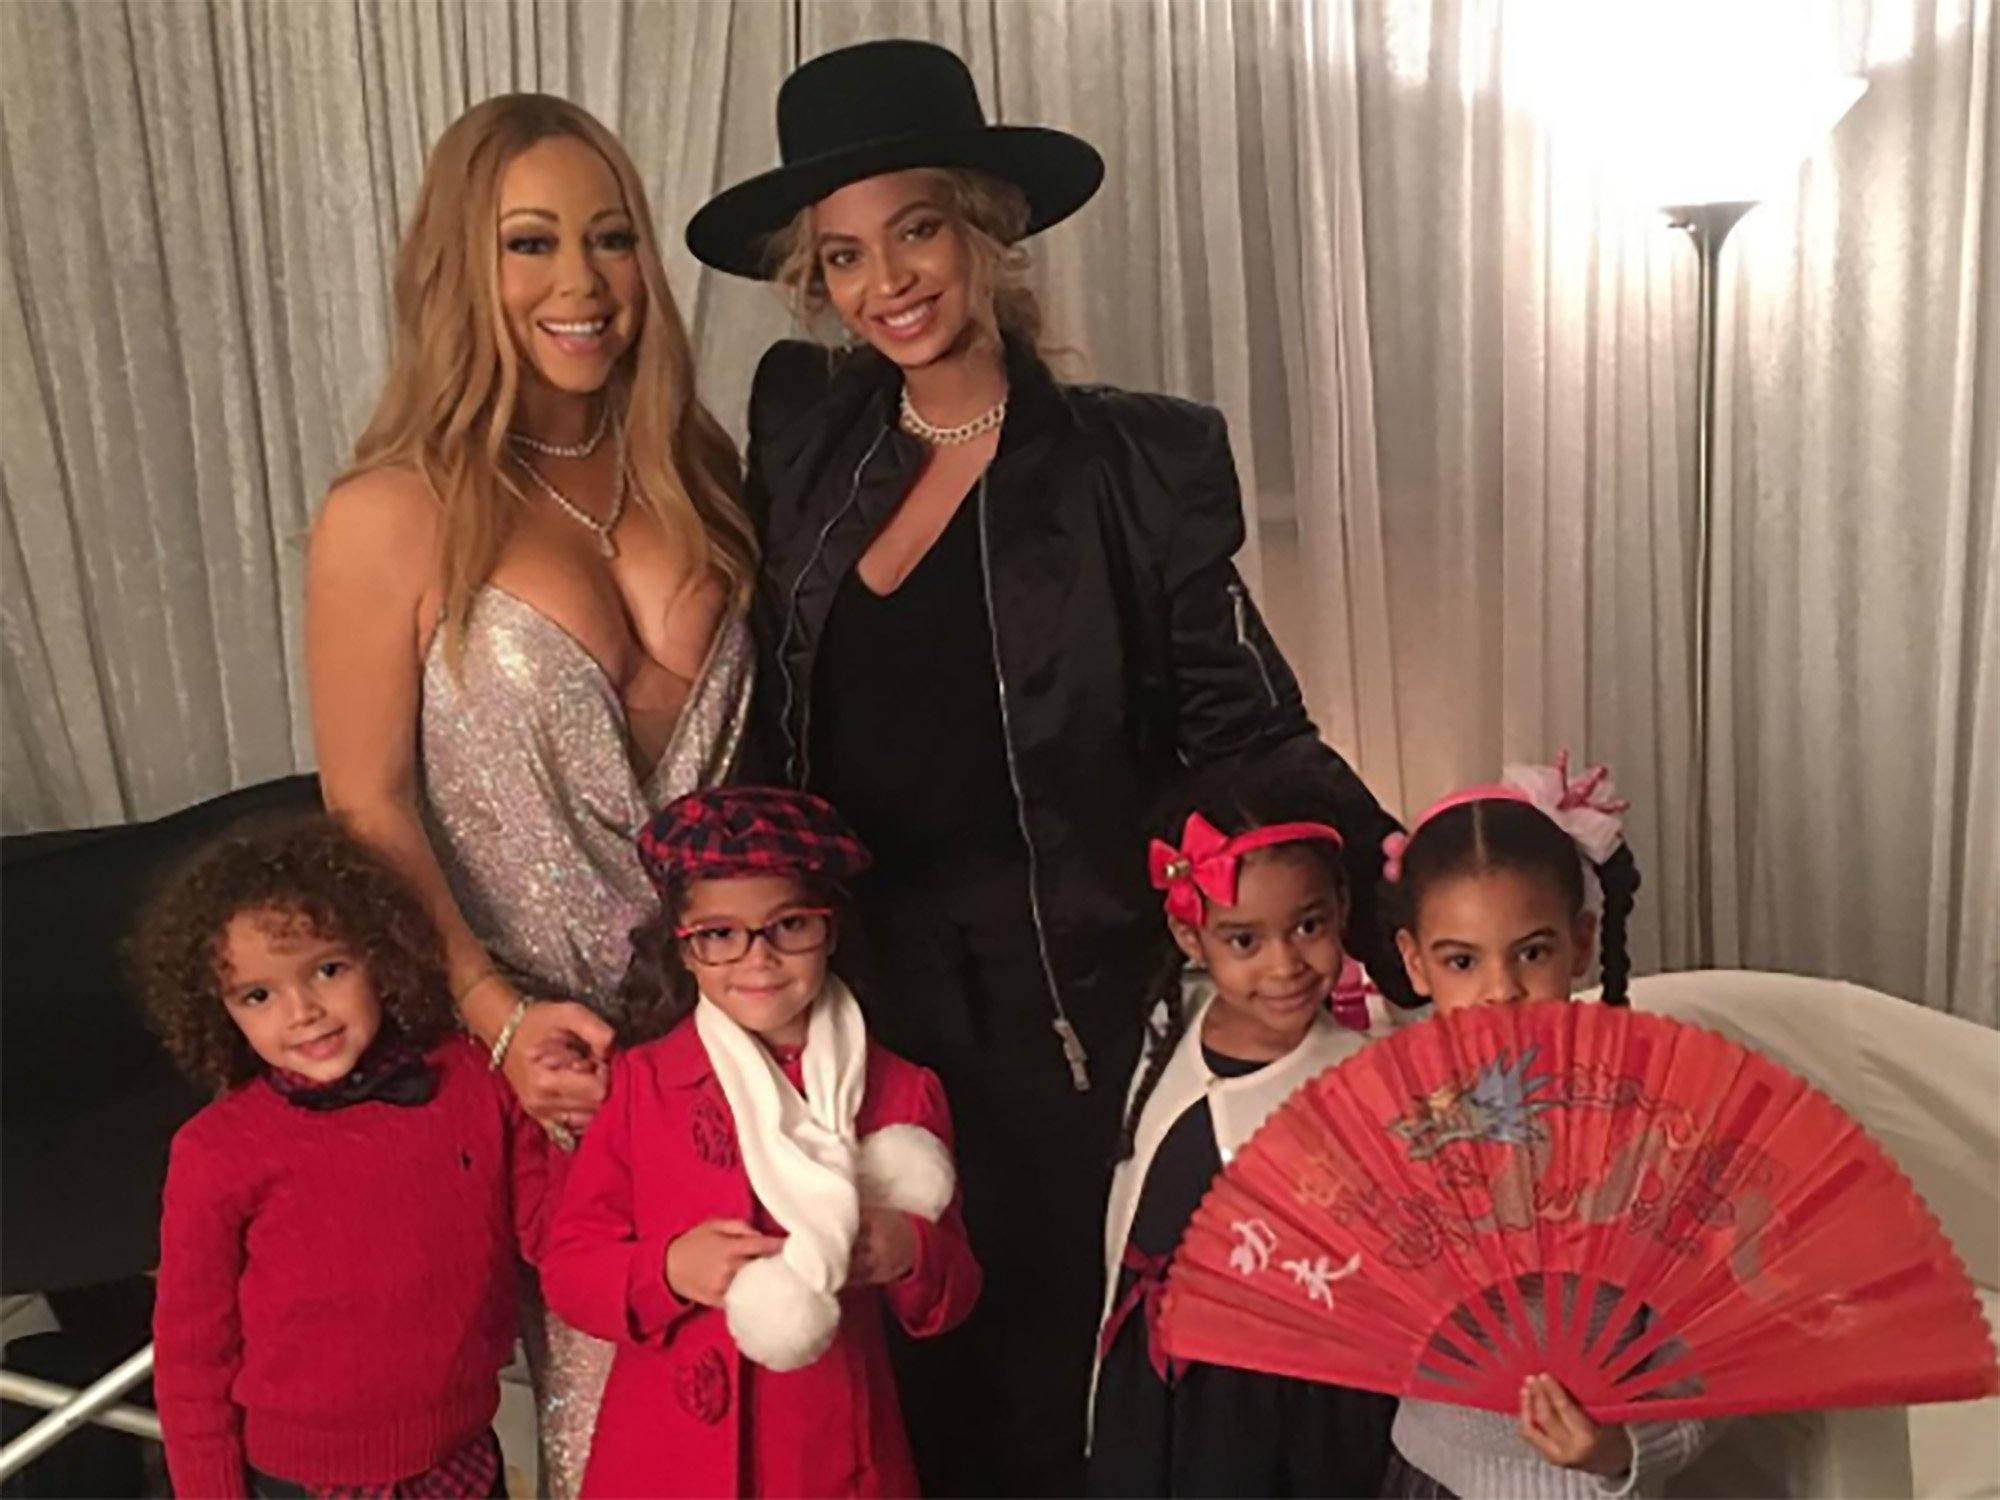 Mariah Carey Beyonce, and their kids